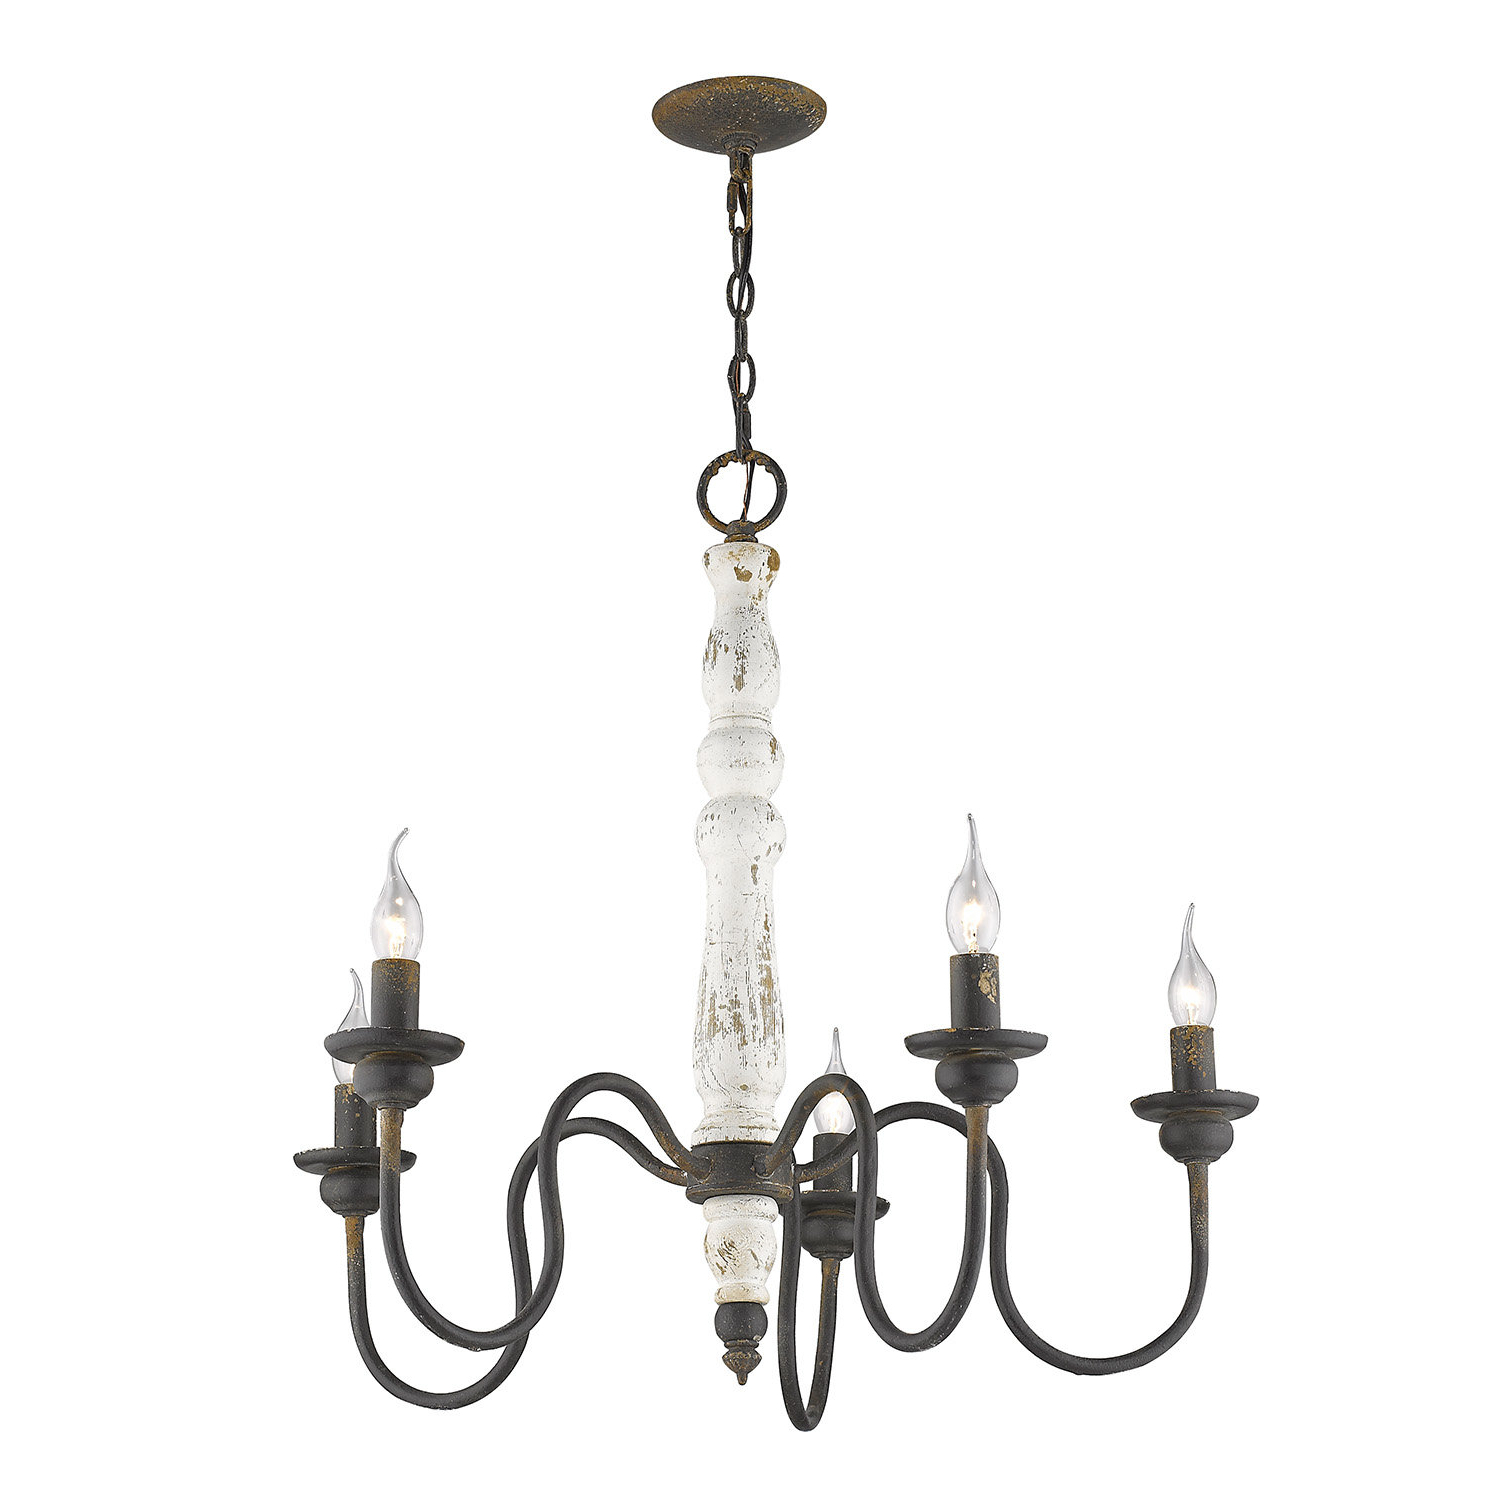 Lynette 5 Light Candle Style Chandelier With Regard To Well Known Shaylee 5 Light Candle Style Chandeliers (View 8 of 25)